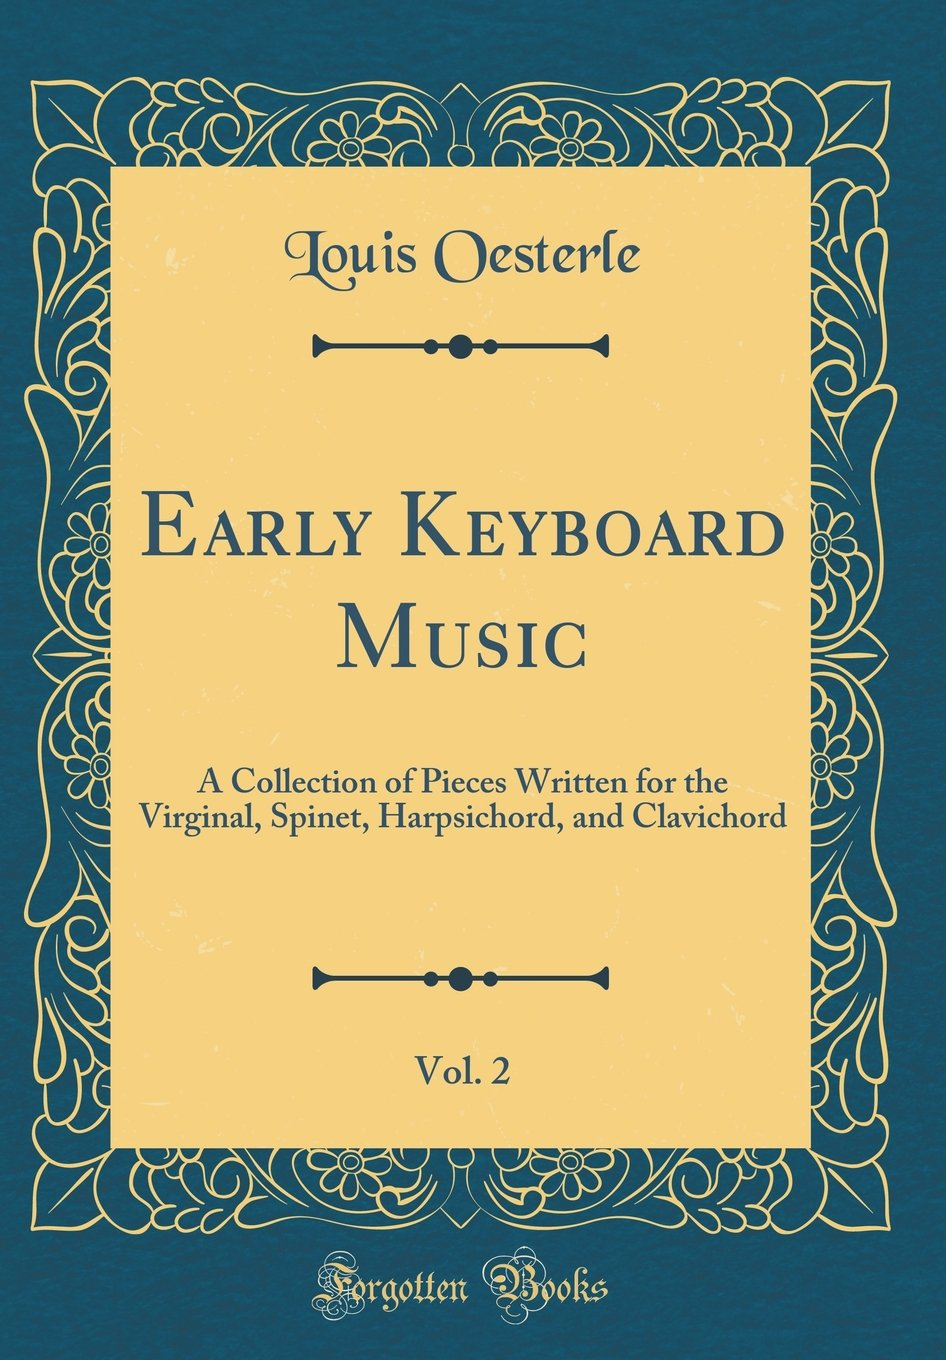 Harpsichord Pieces in Two Volumes, vol. 1, suite 1: Gigue